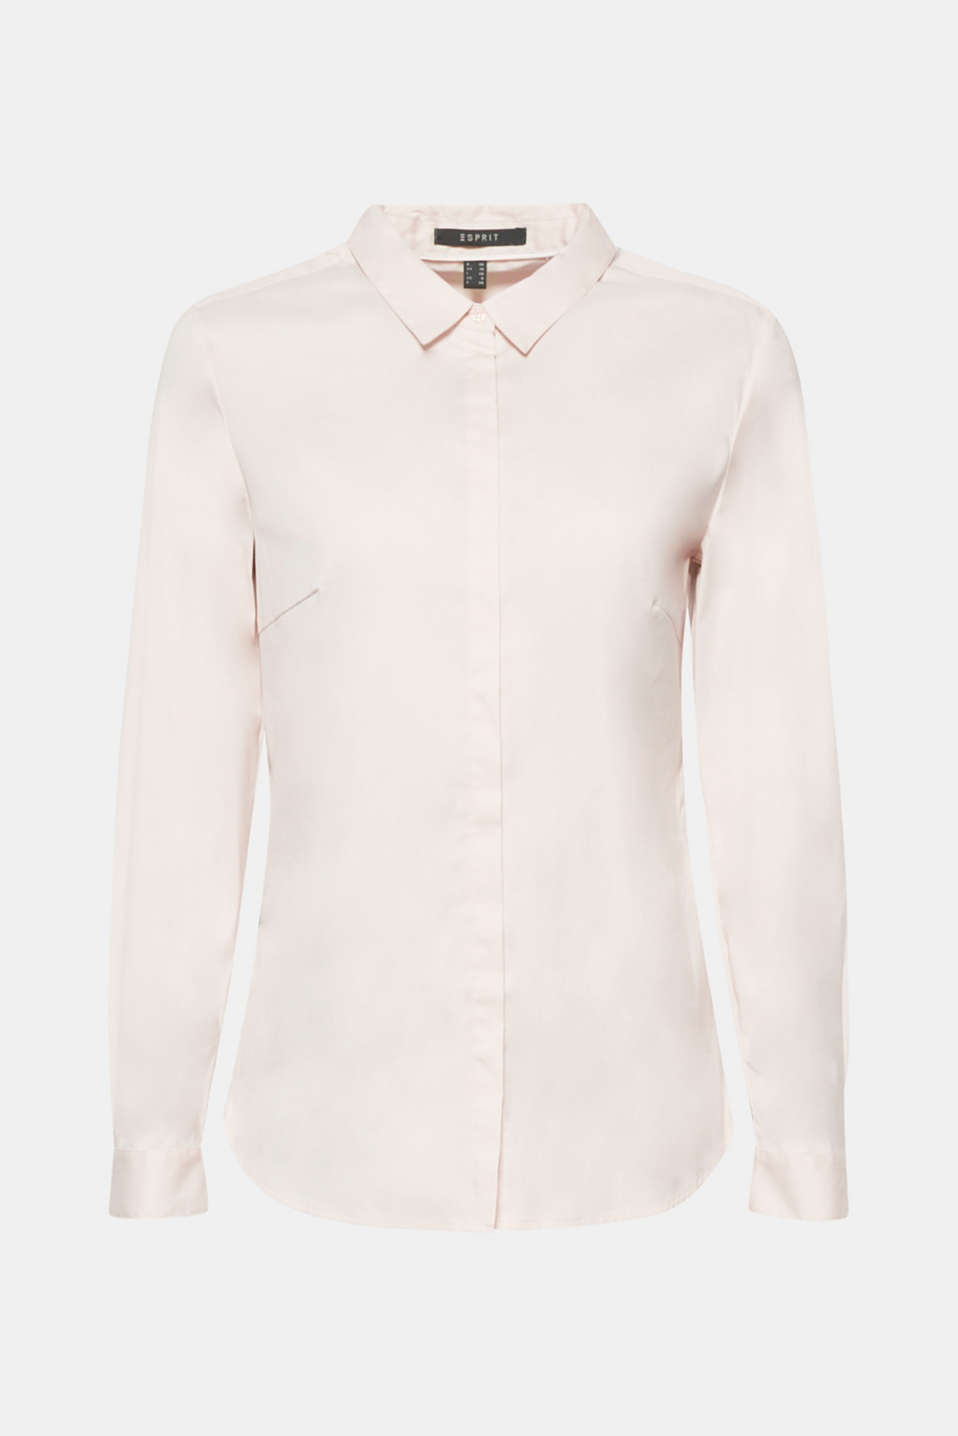 Classic business blouse with a shirt collar and concealed button placket in soft, blended cotton